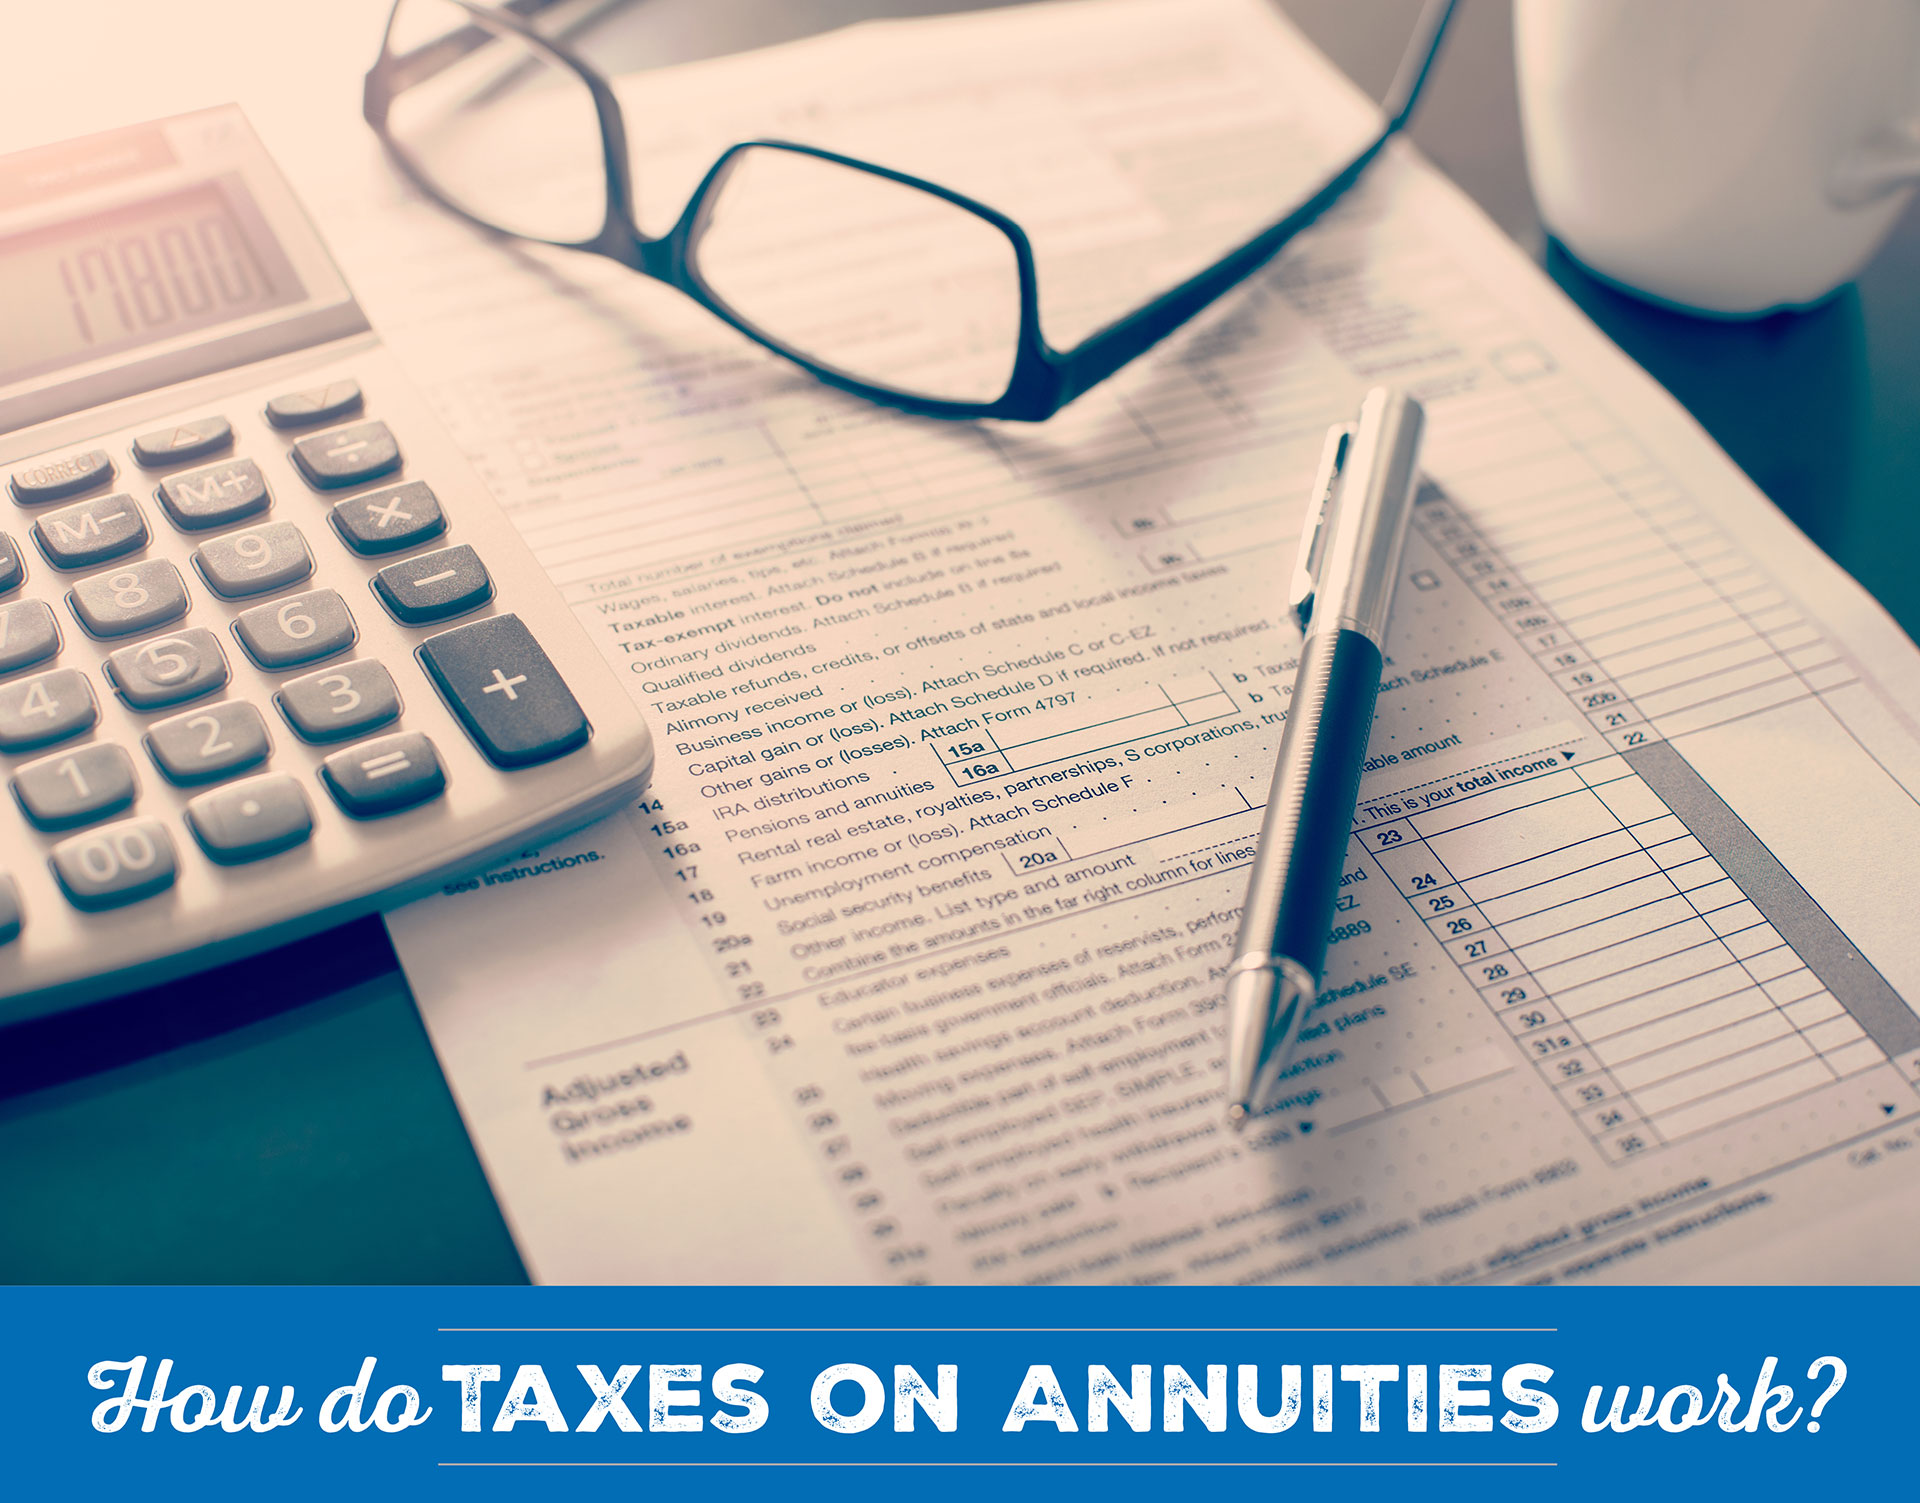 How Do Taxes on Annuities Work?